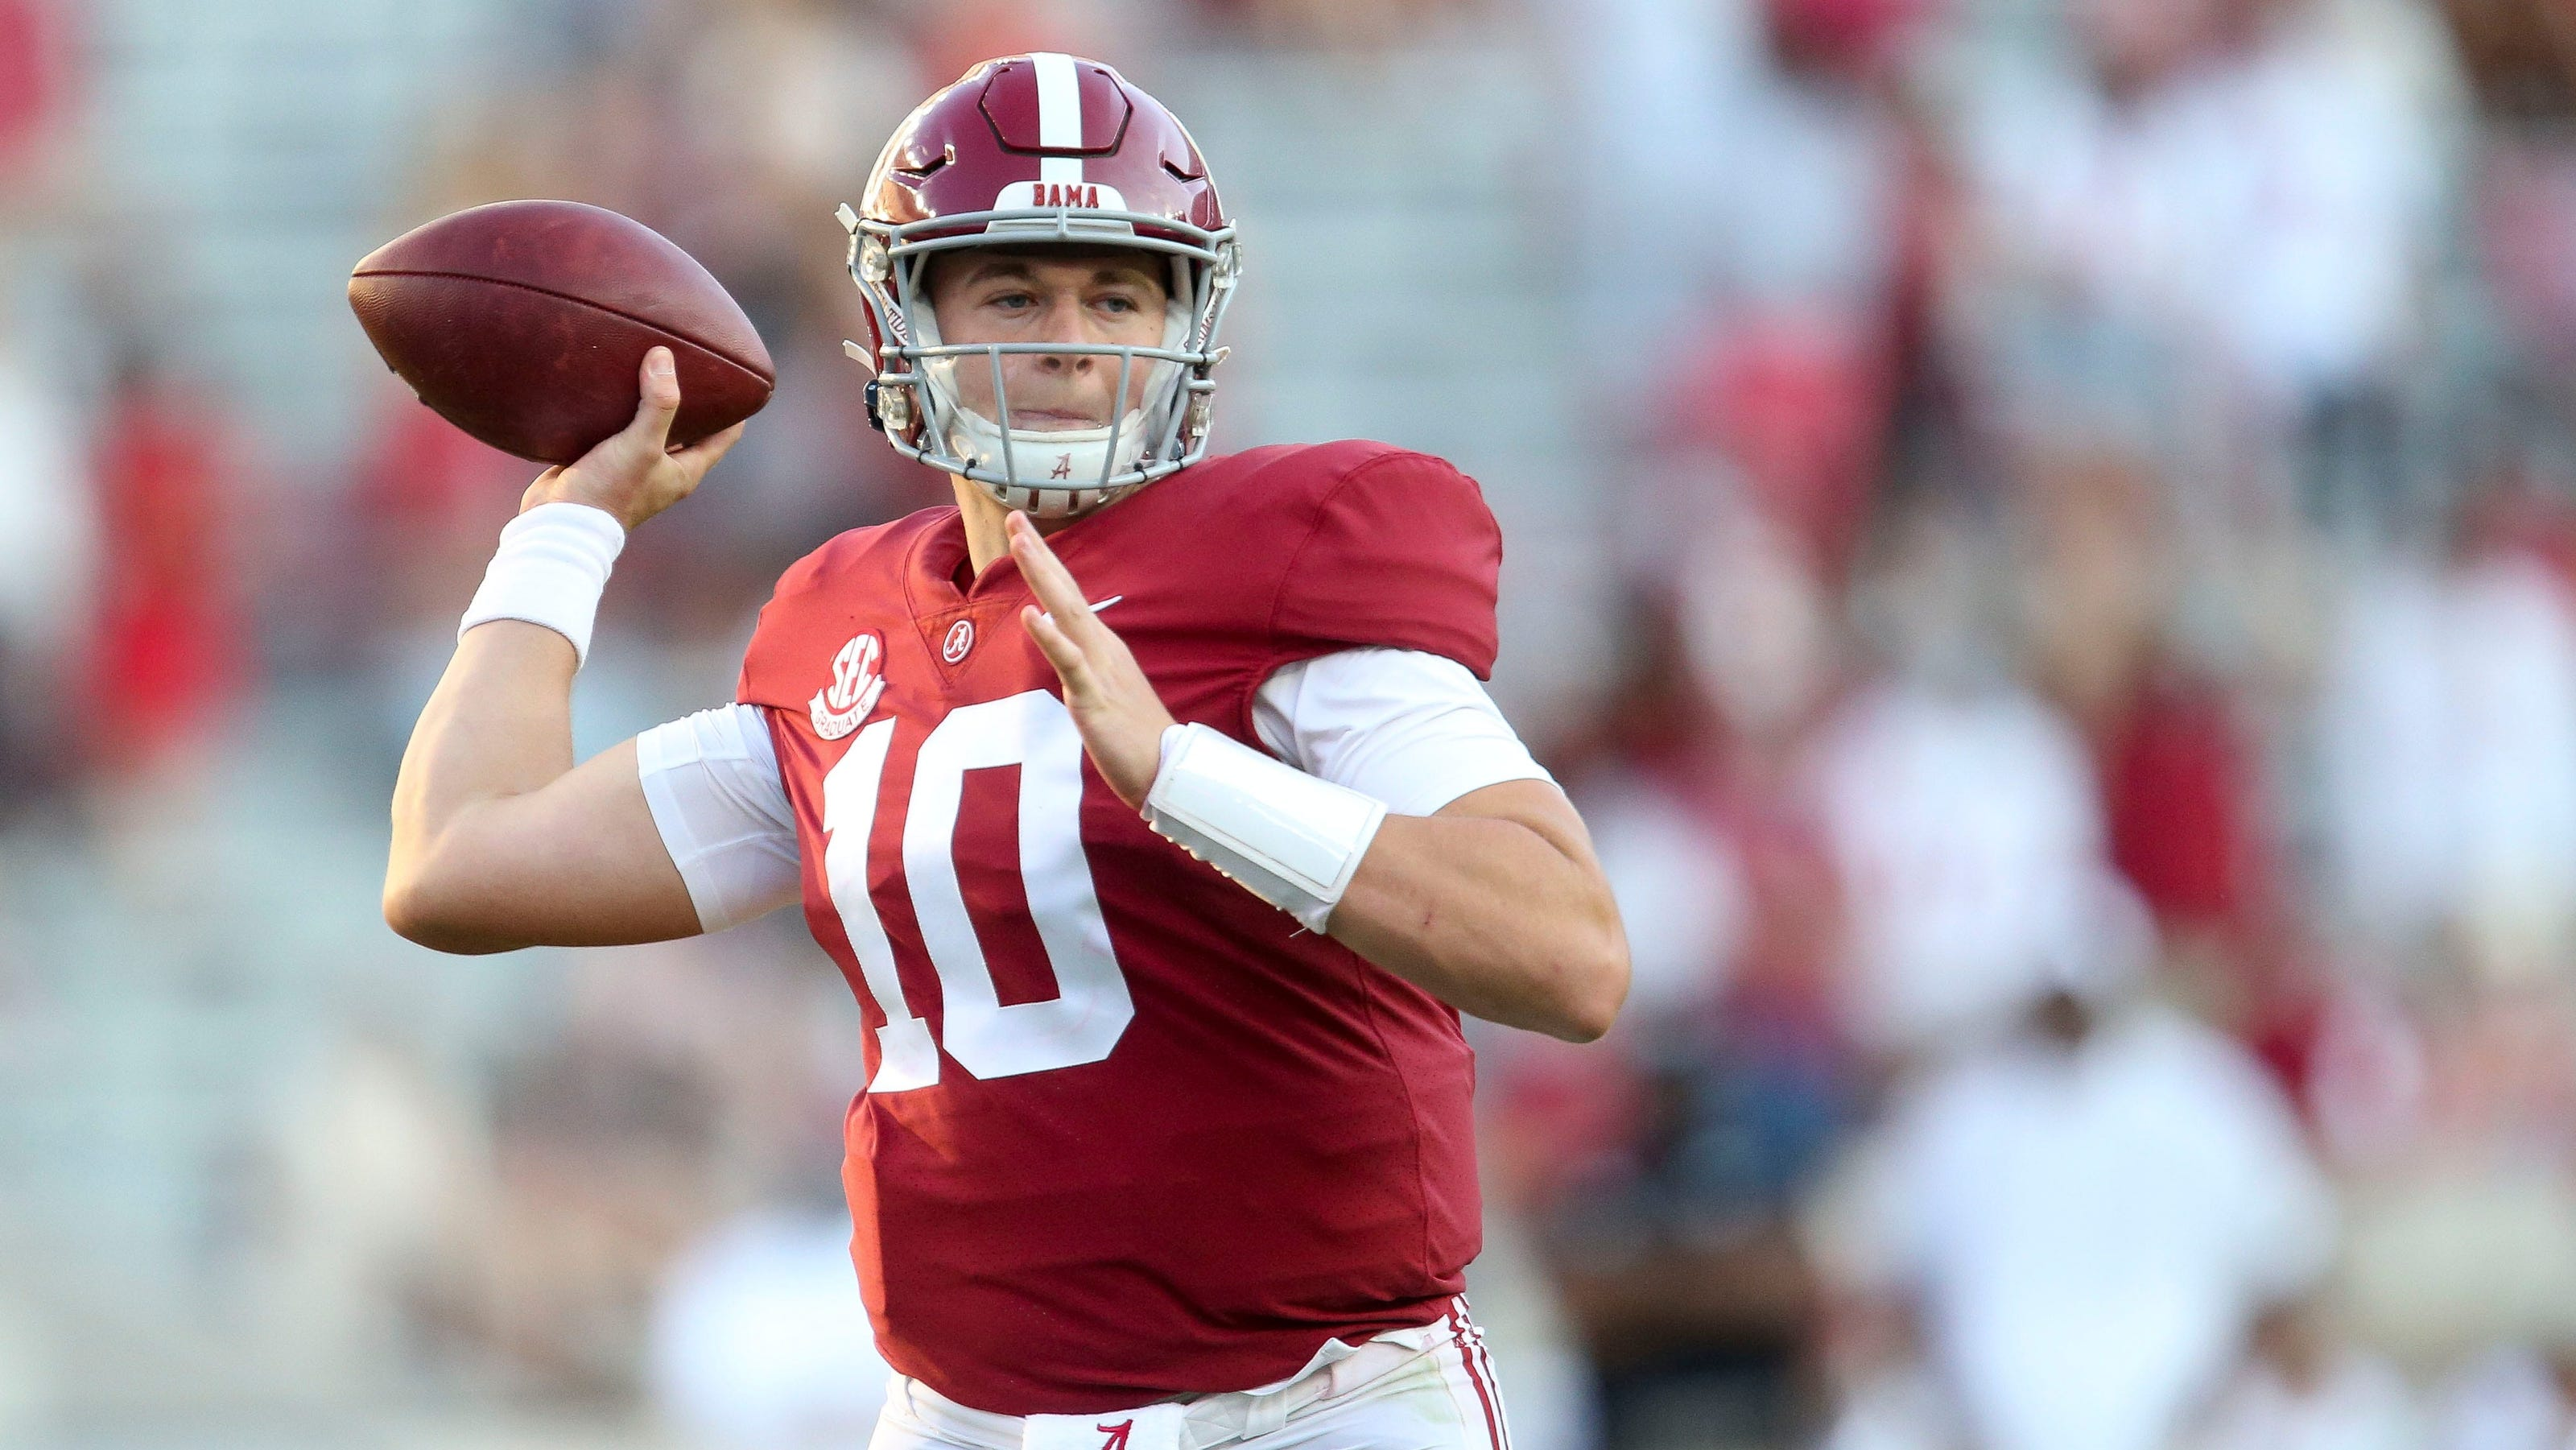 Opinion: Mac Jones might be a top-three NFL draft pick, but Alabama QB leaves key questions for teams